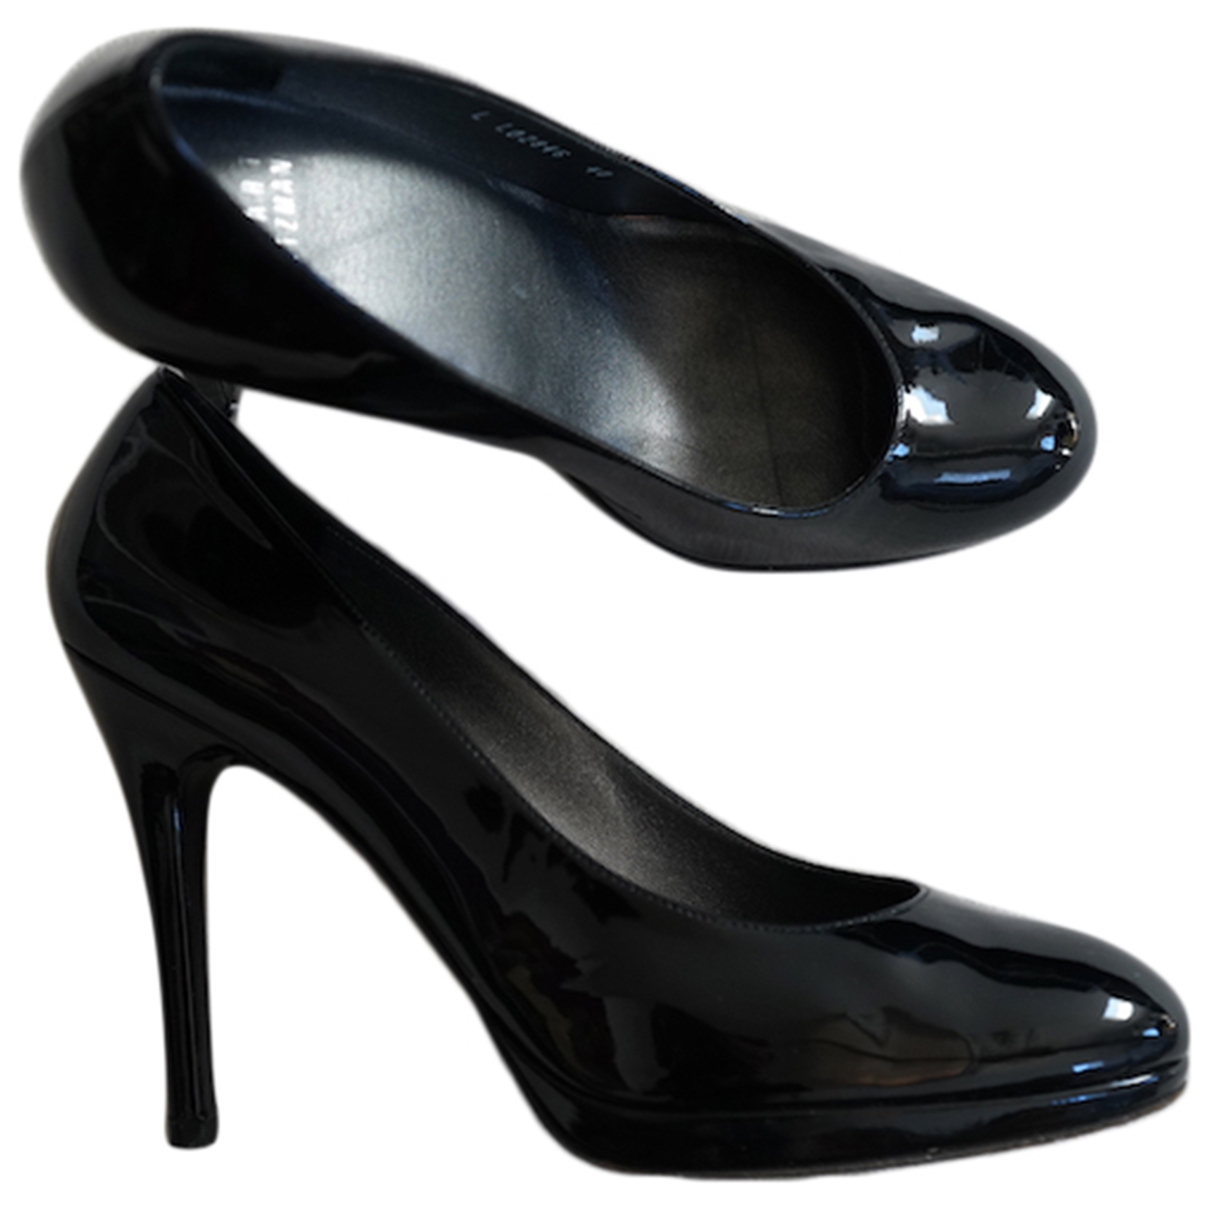 Stuart Weitzman \N Black Patent leather Heels for Women 40 EU